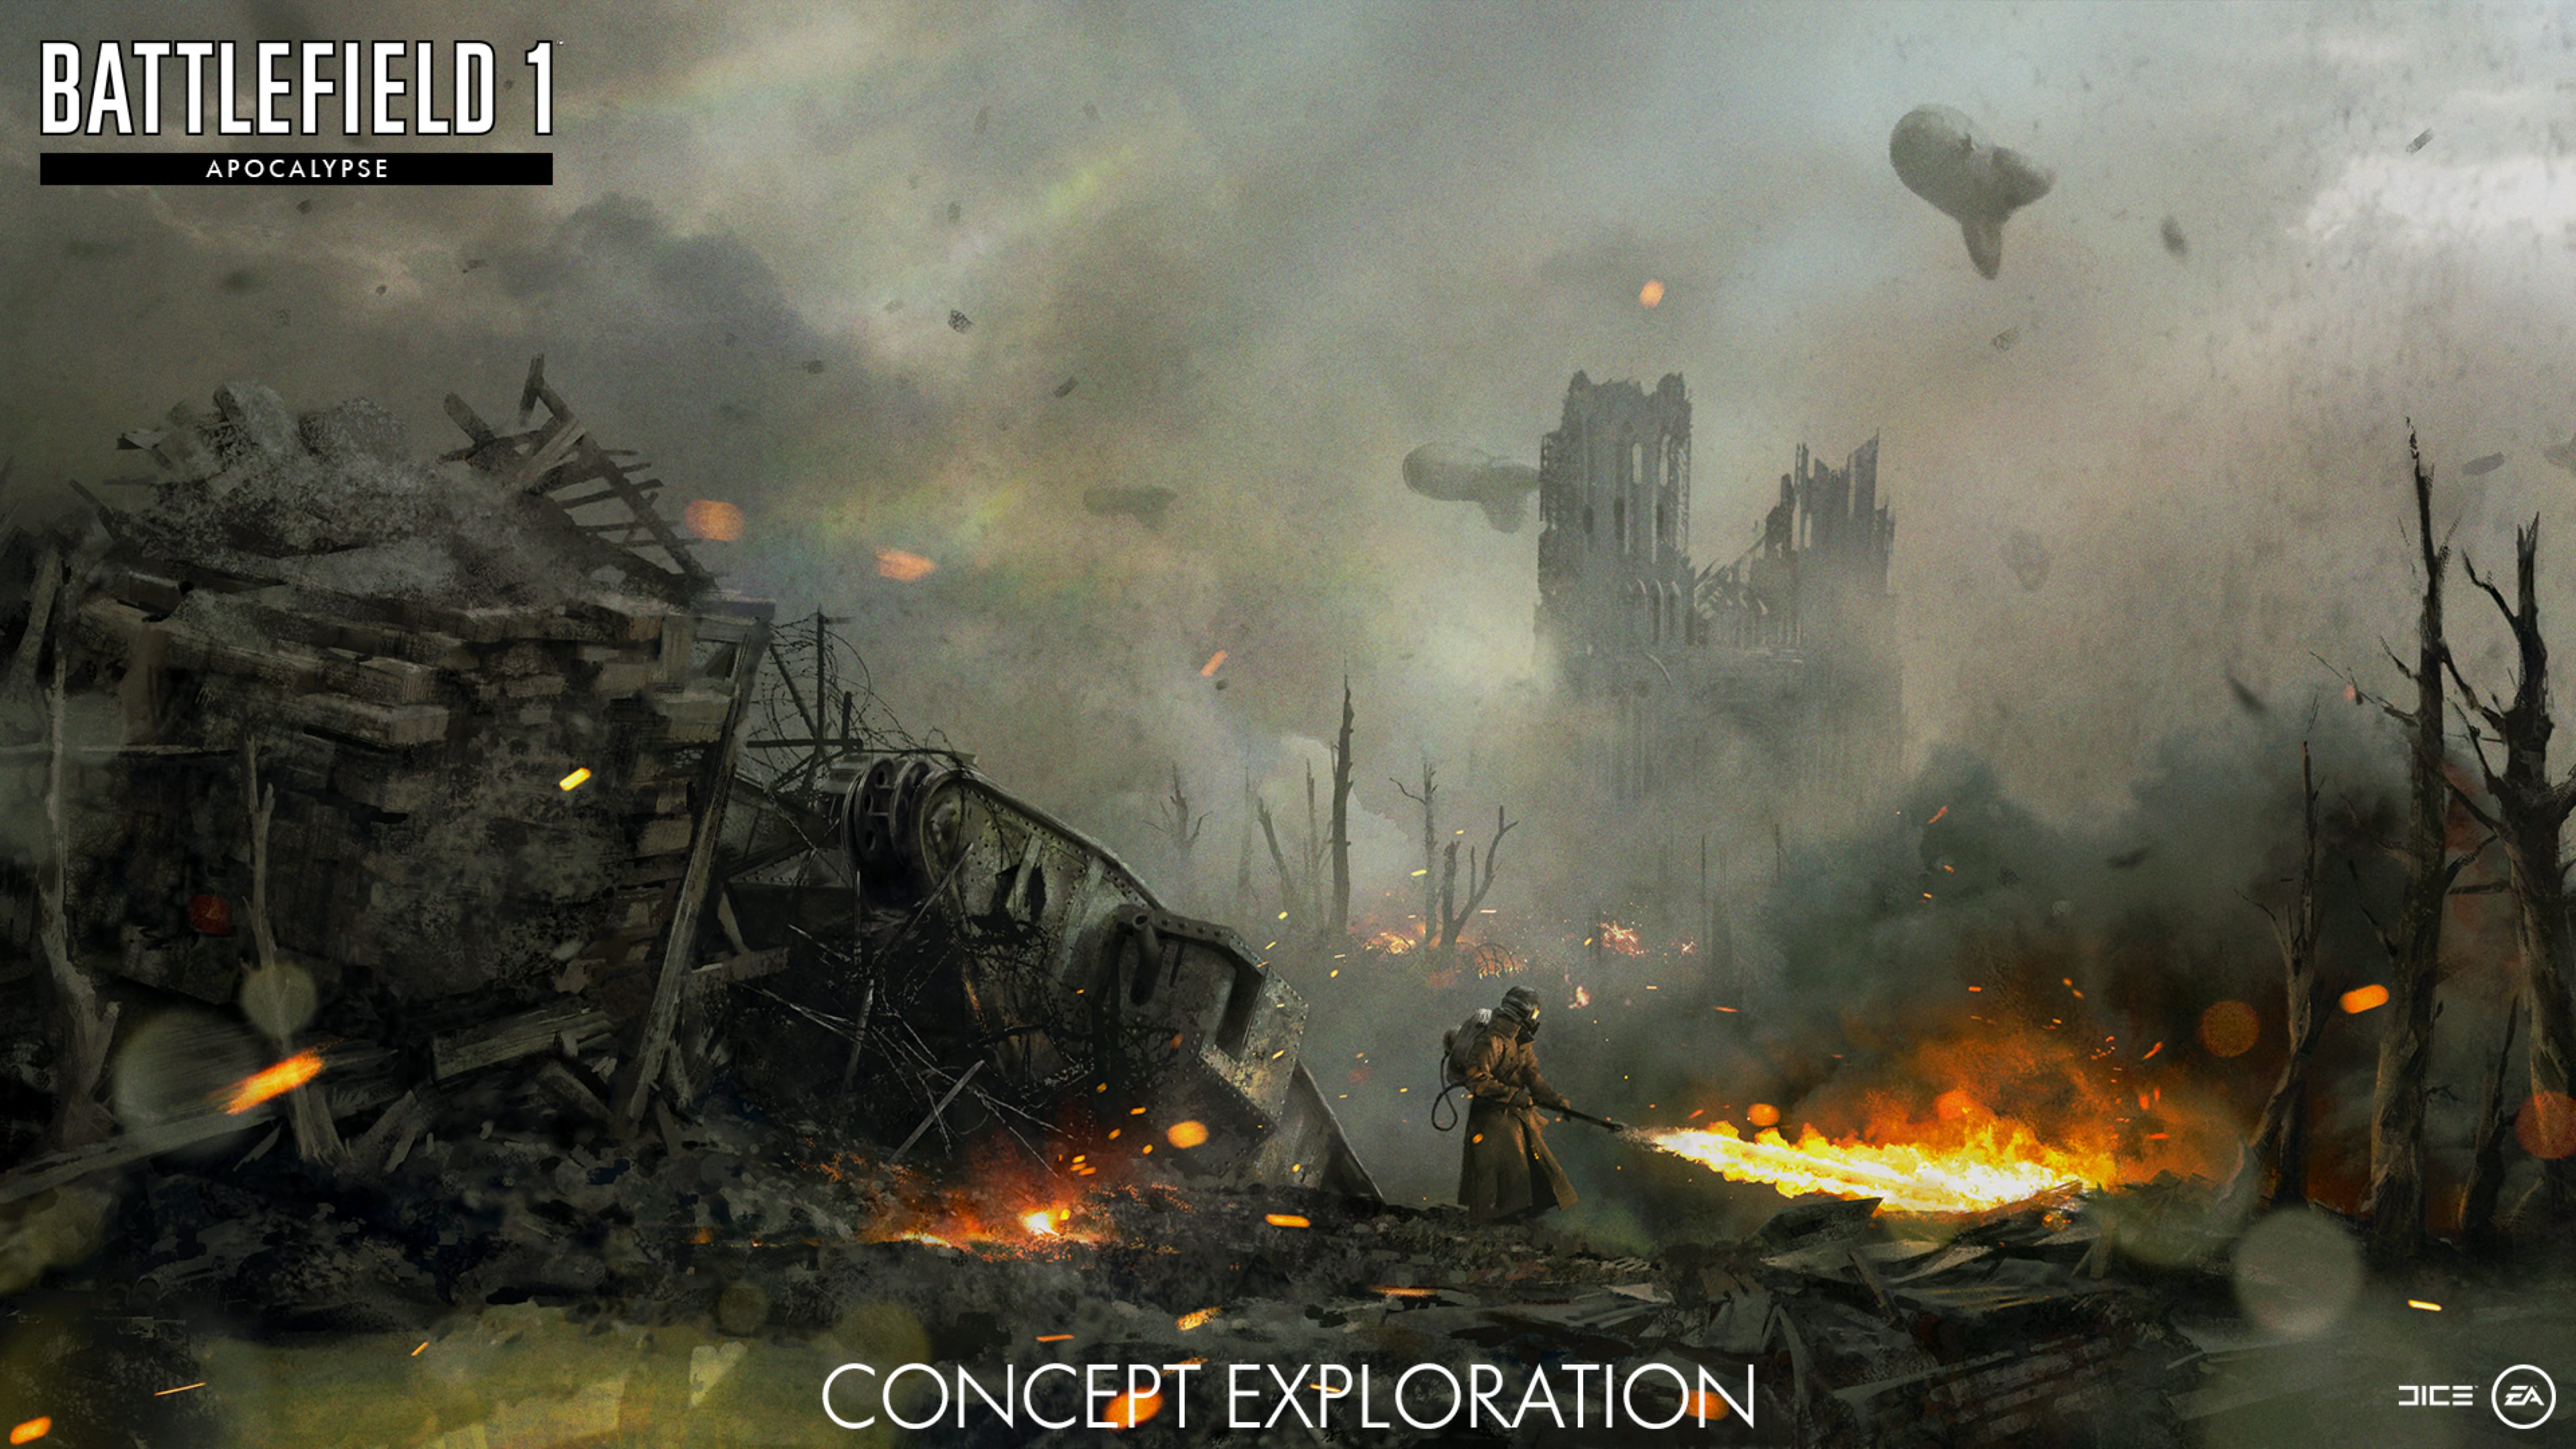 Battlefield 1's Latest Expansion, Apocalypse, Arrives Next Month